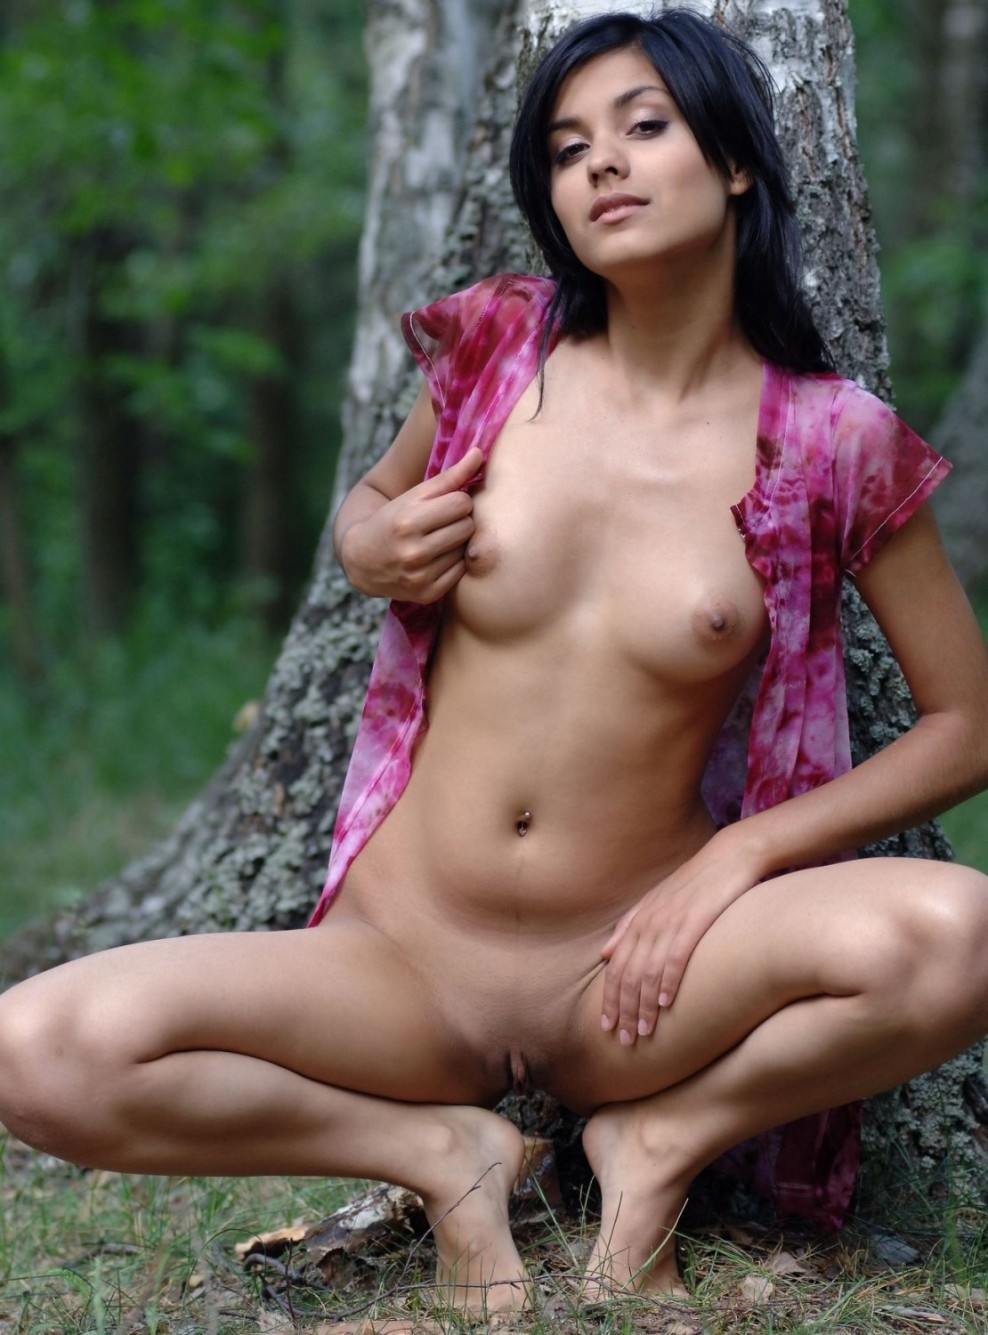 Christy kee nude photo